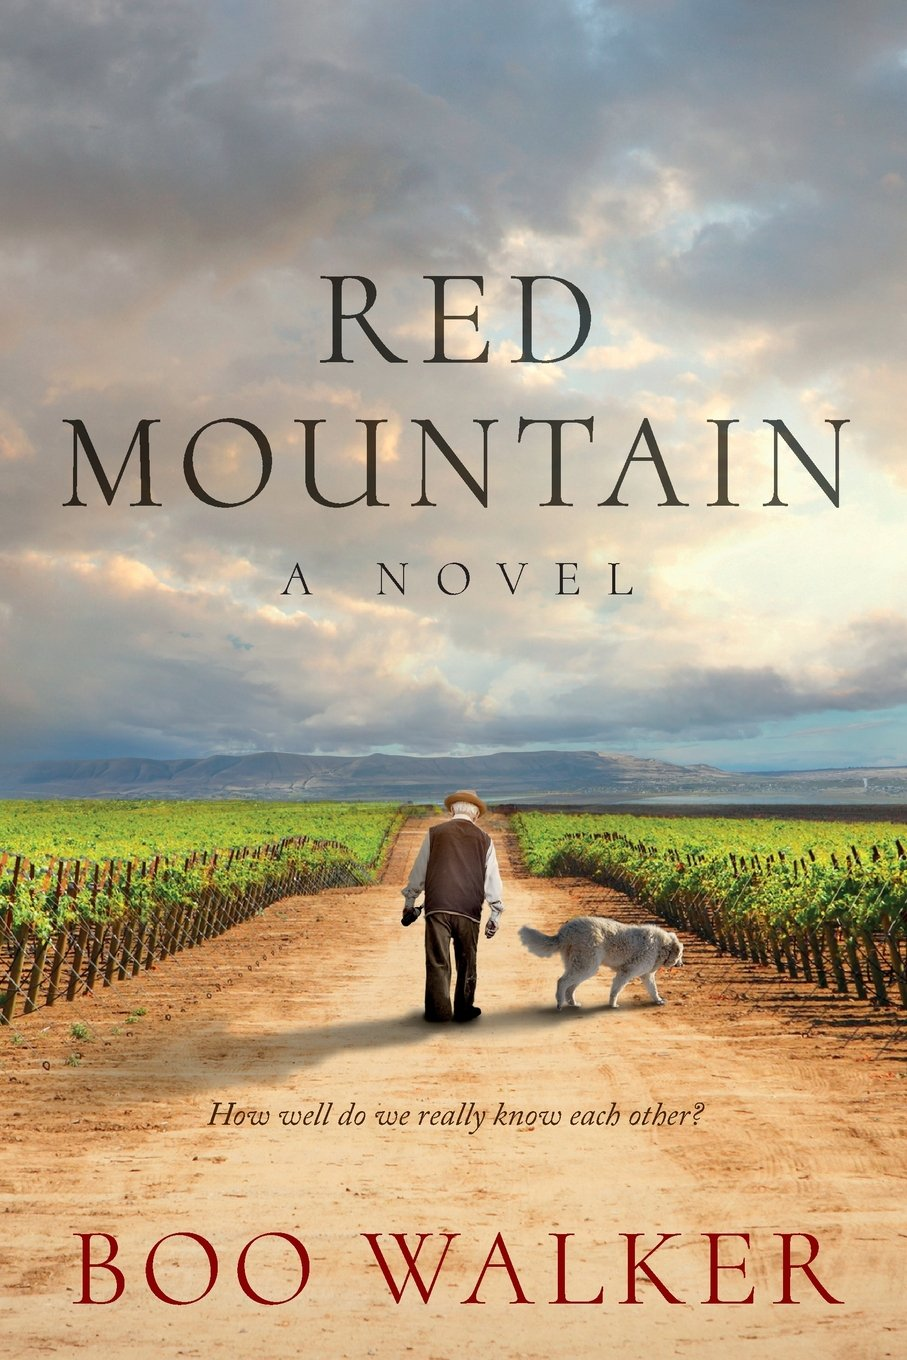 Red Mountain Novel Boo Walker product image